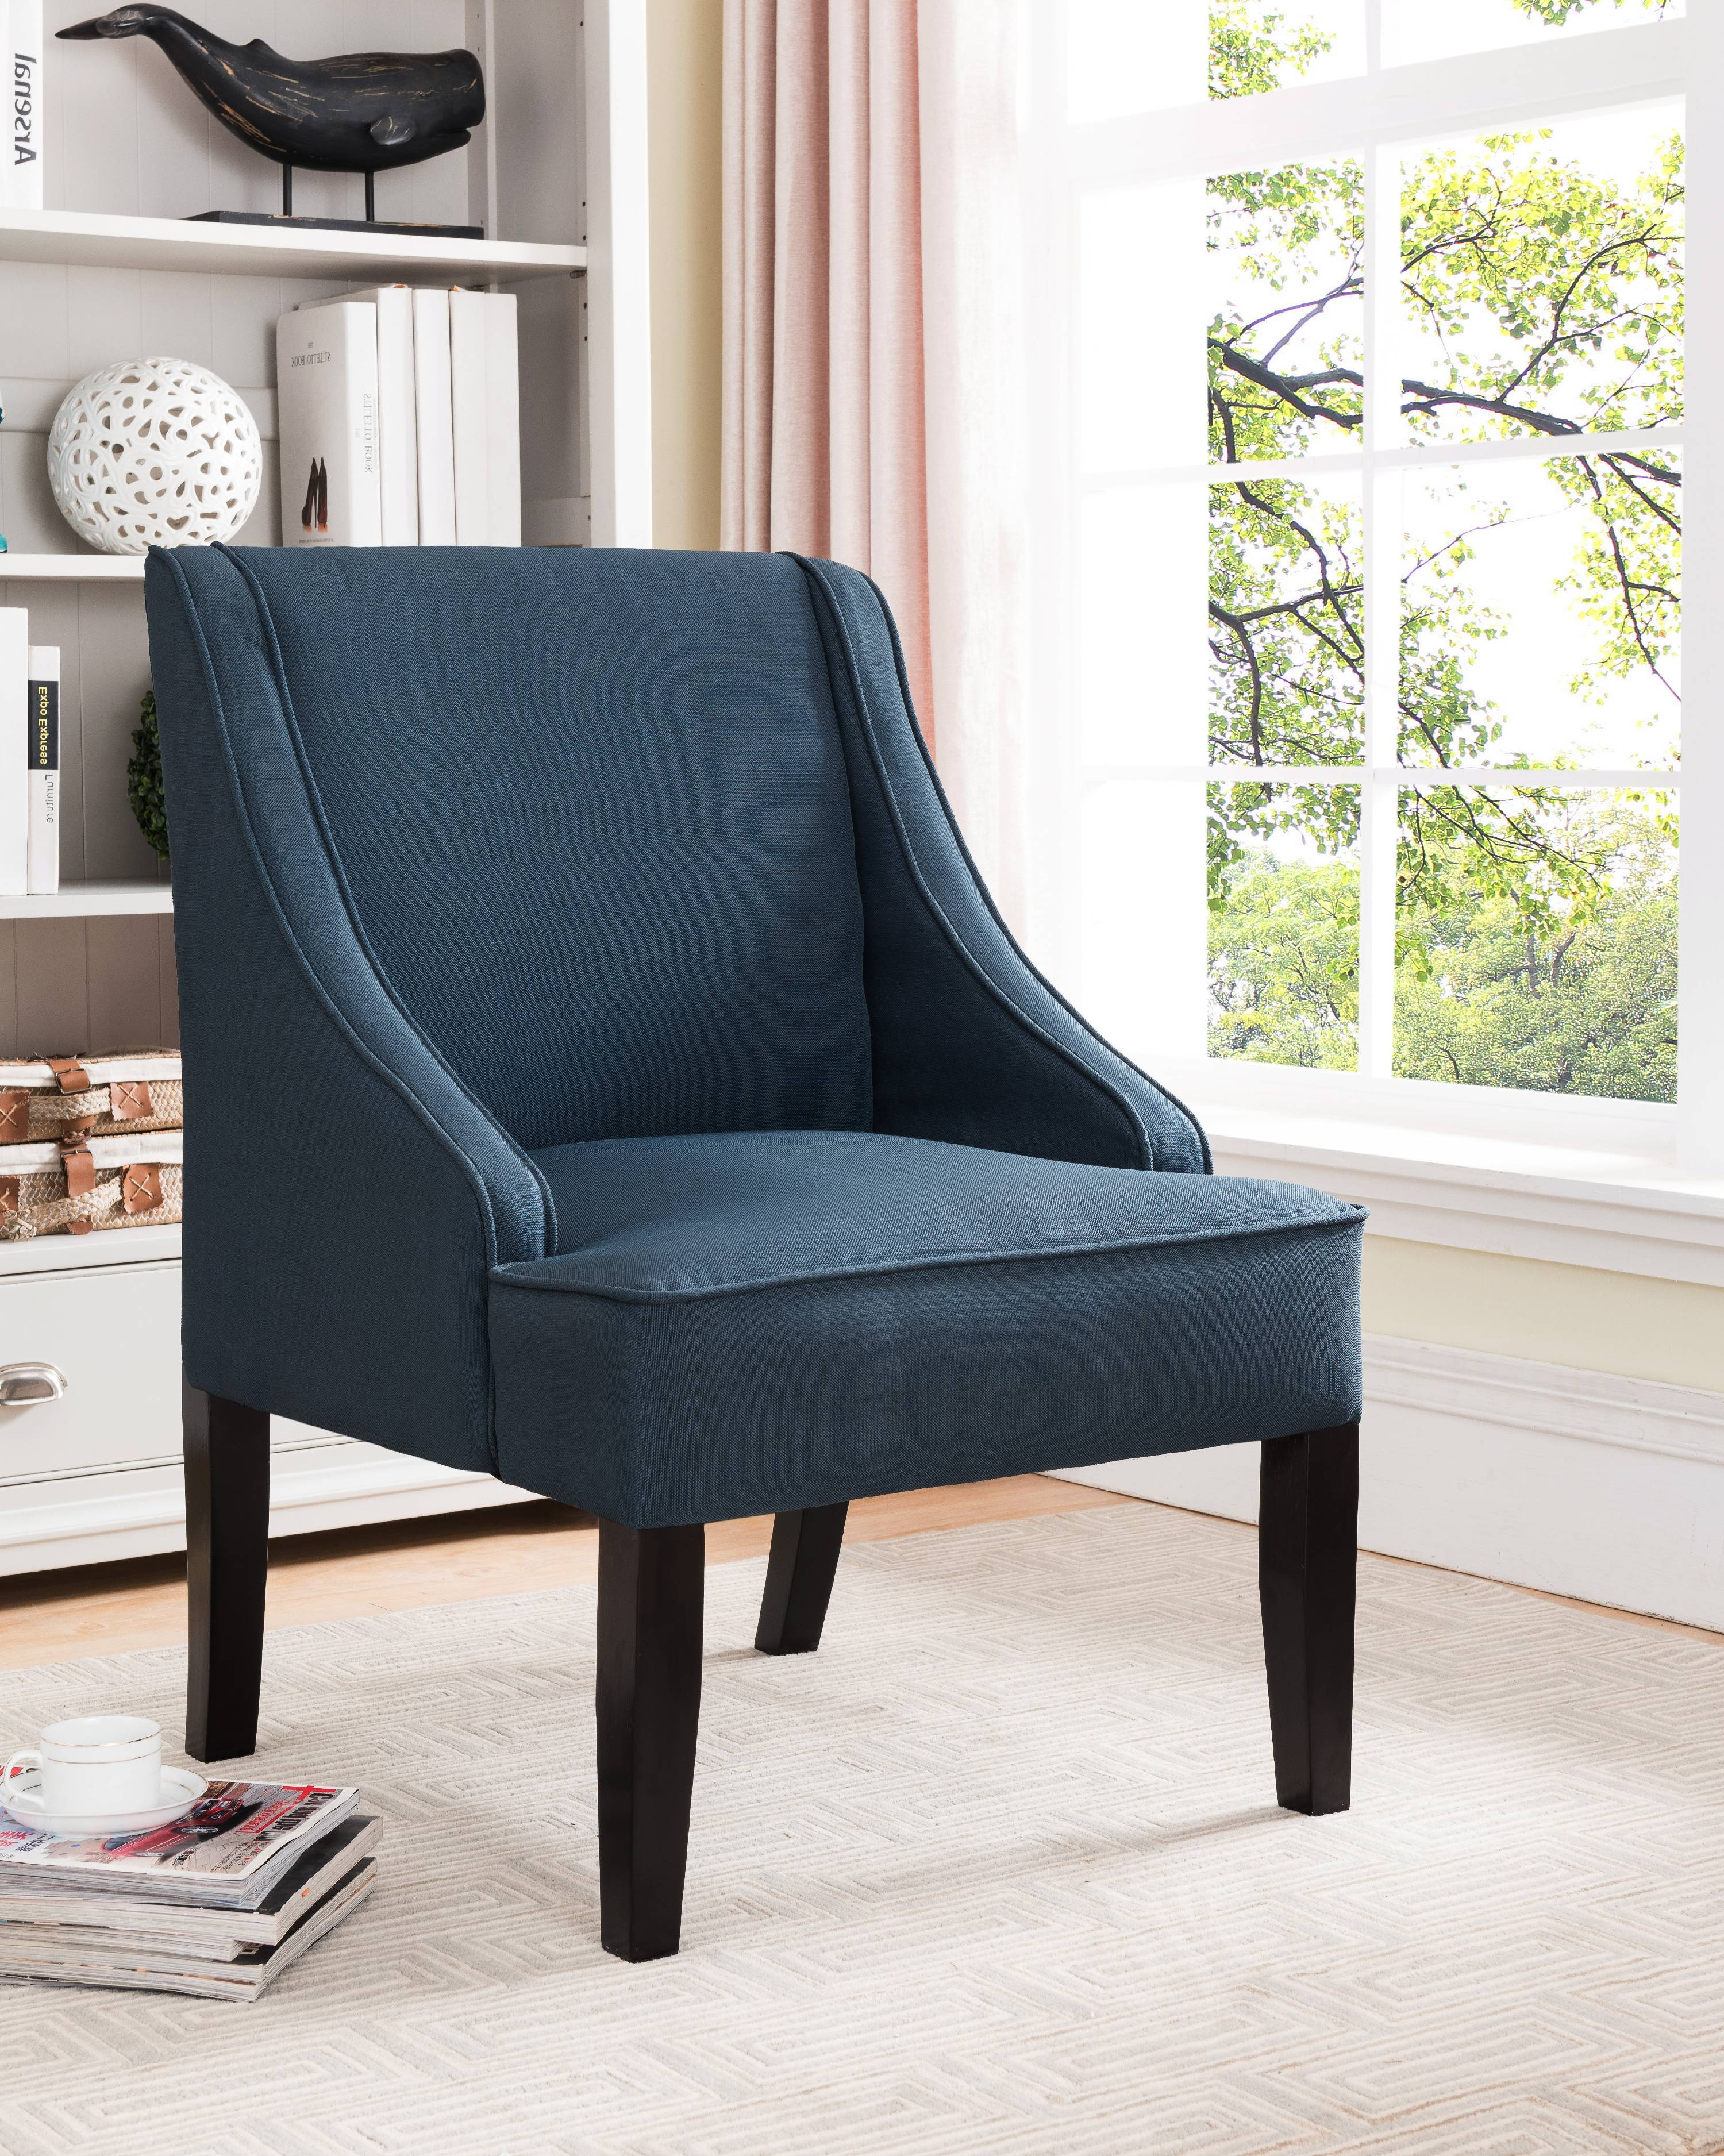 oversized upholstered chair folding quad with canopy noelle dark blue black fabric accent wood frame legs walmart com